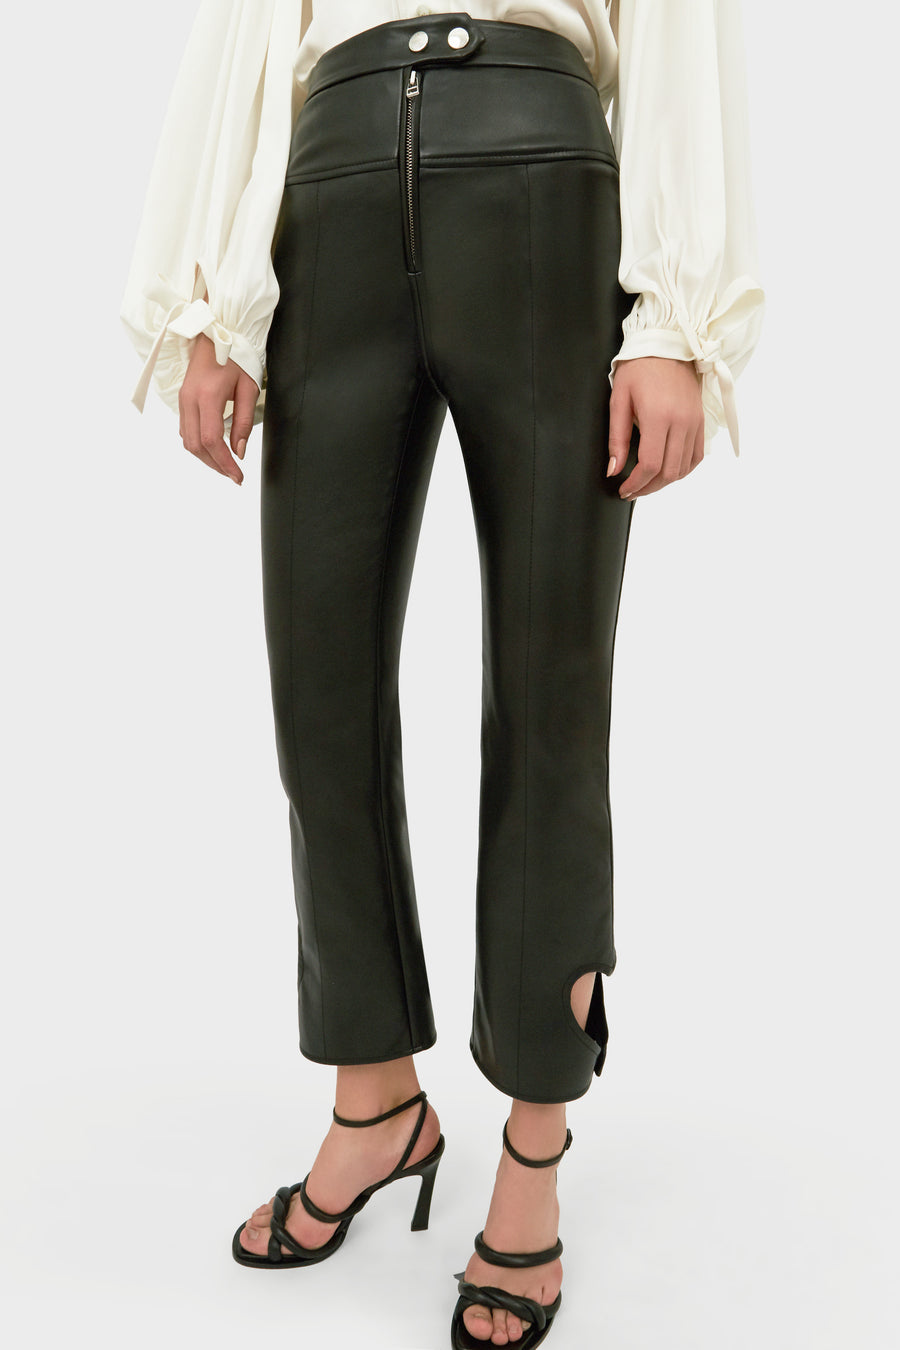 JICAS STRAIGHT PANT WITH LOVEHEART DETAIL